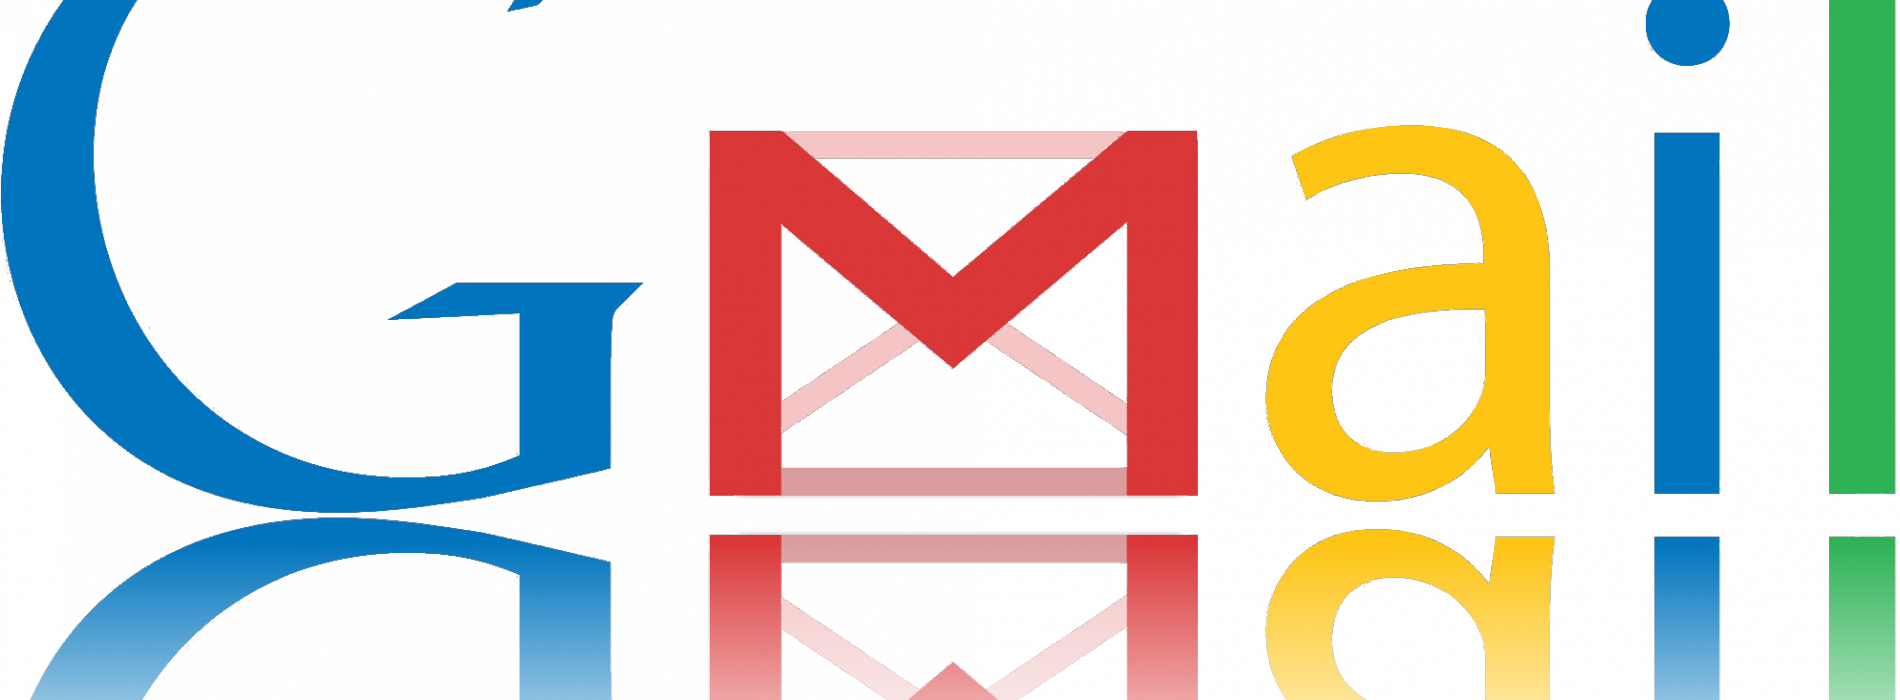 Google adds HTTPS encryption to Gmail between their servers